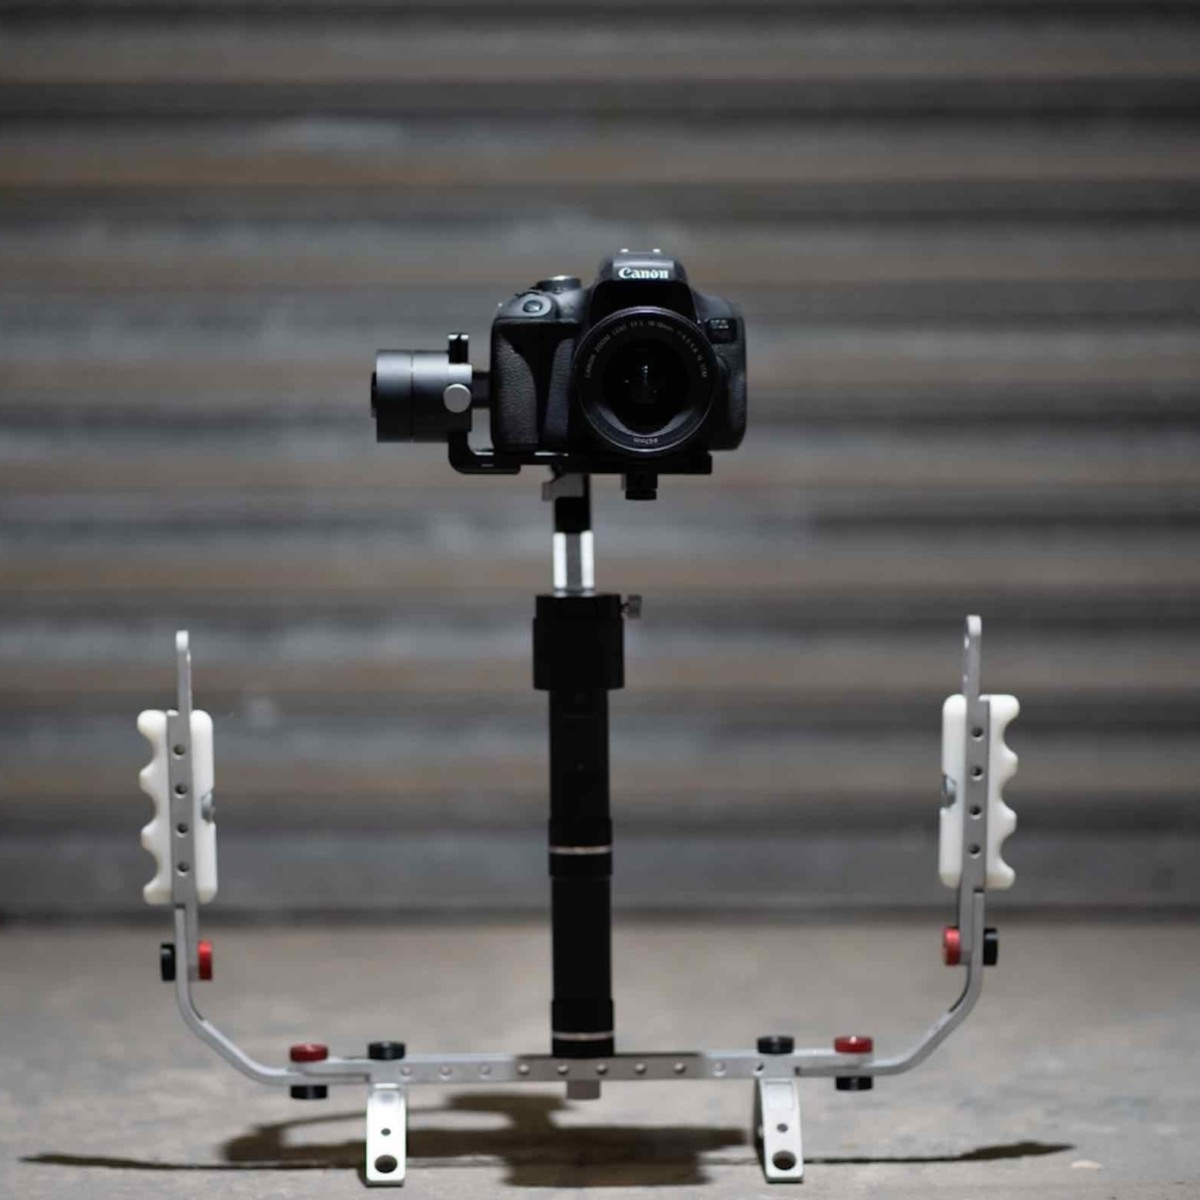 PhORM Camera Rig Construction Kit can be whatever you need